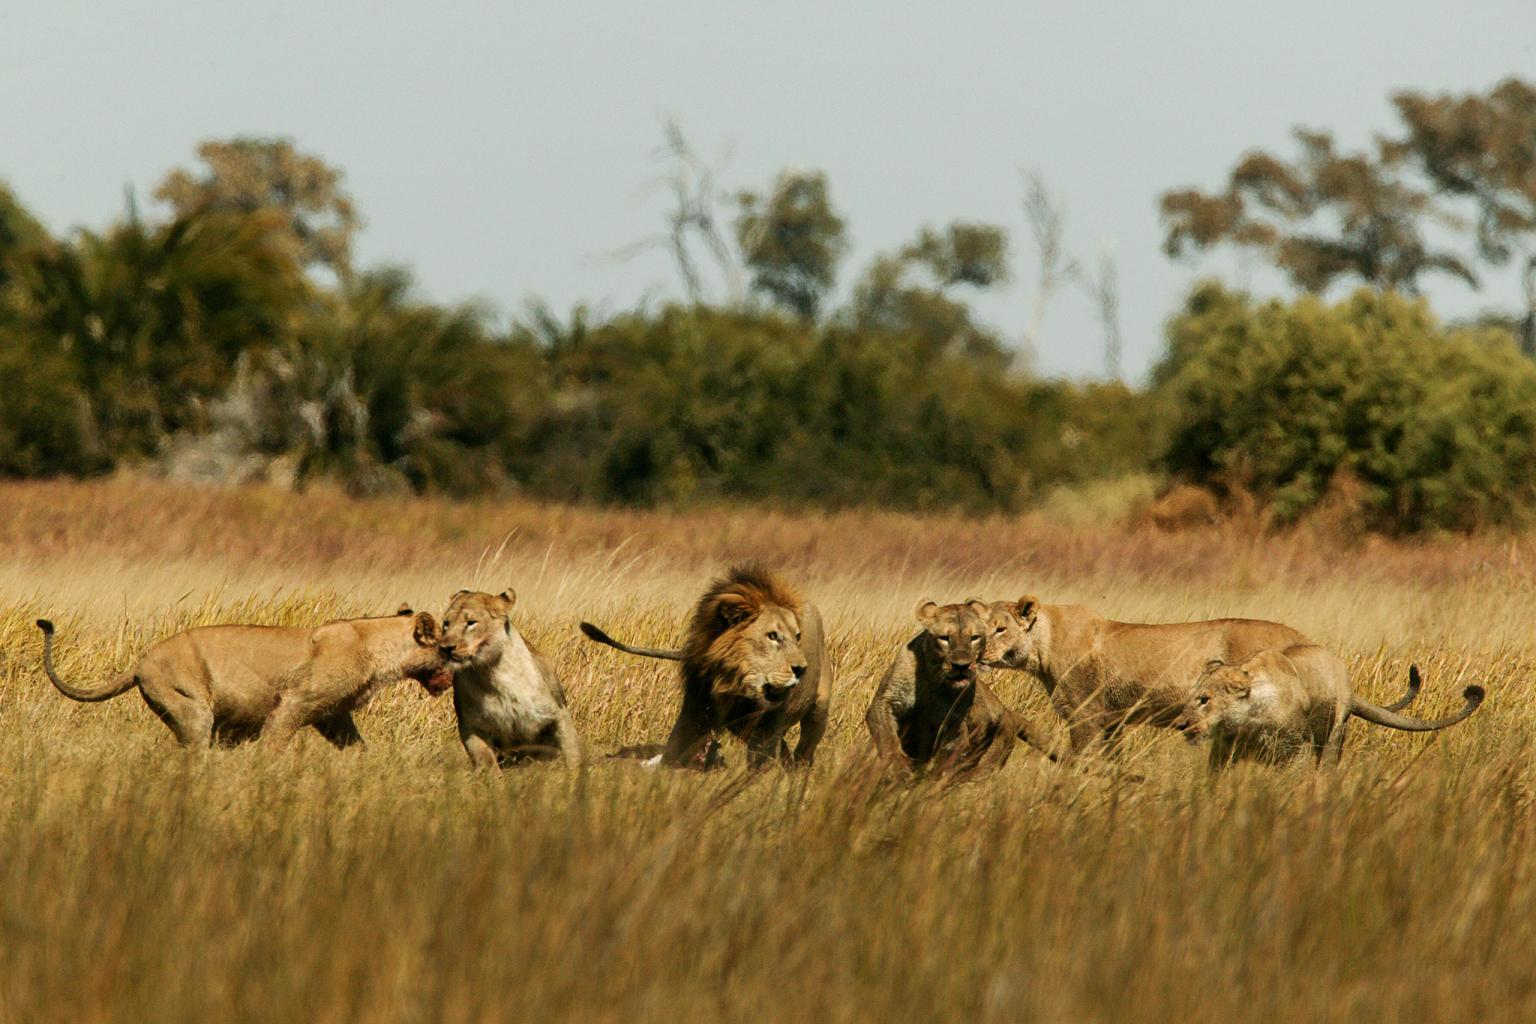 Lions play in the Okavango Delta